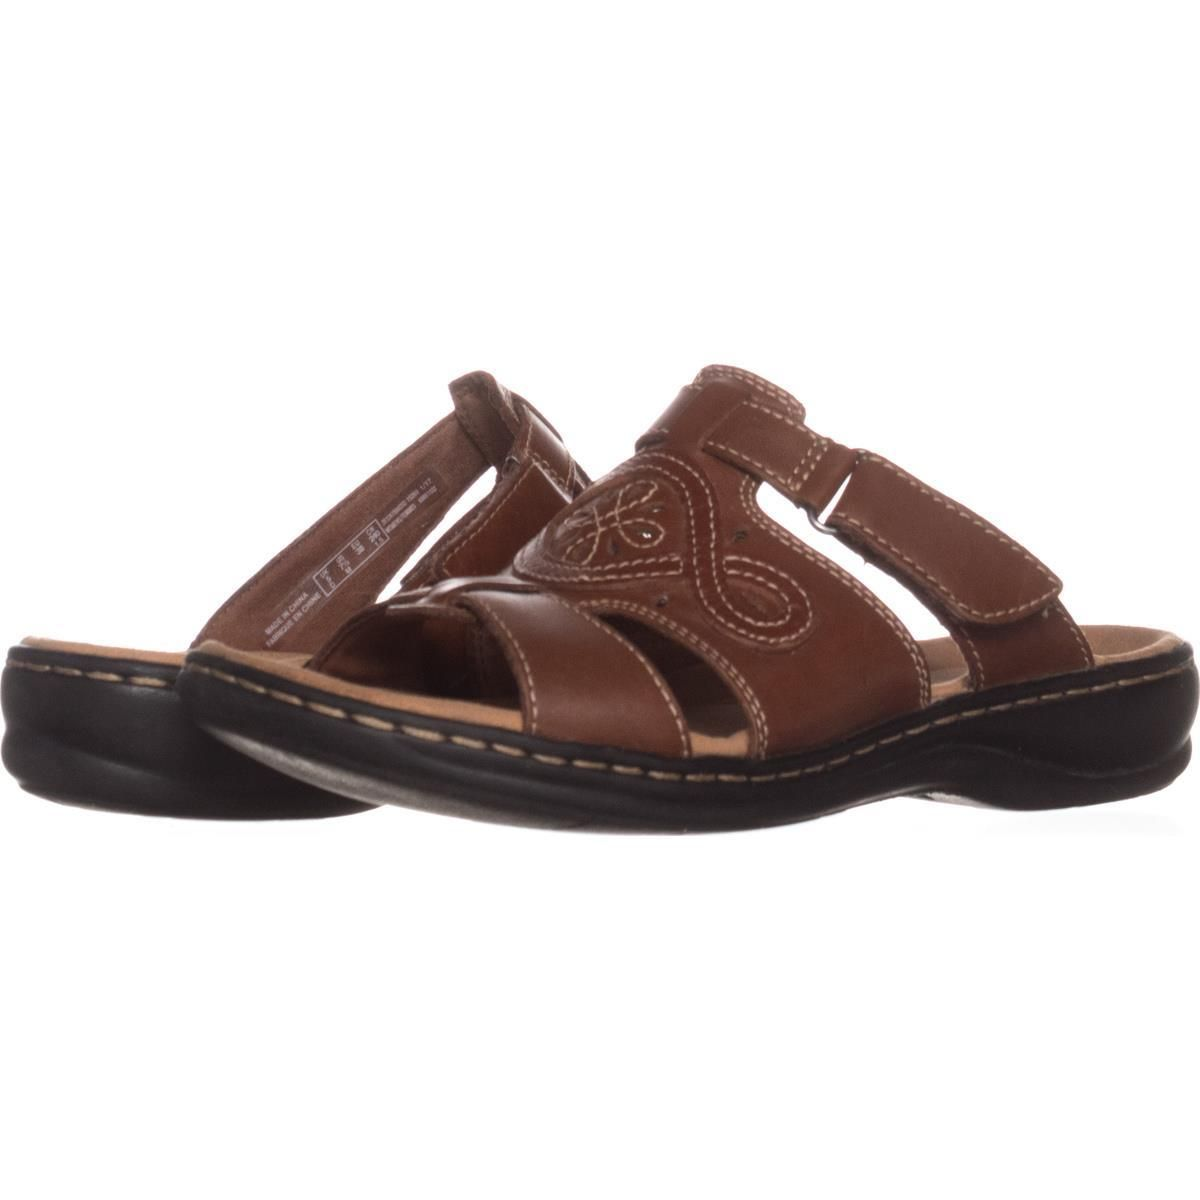 486dd6c6206 Clarks Leisa Higley Slide Sandals 417